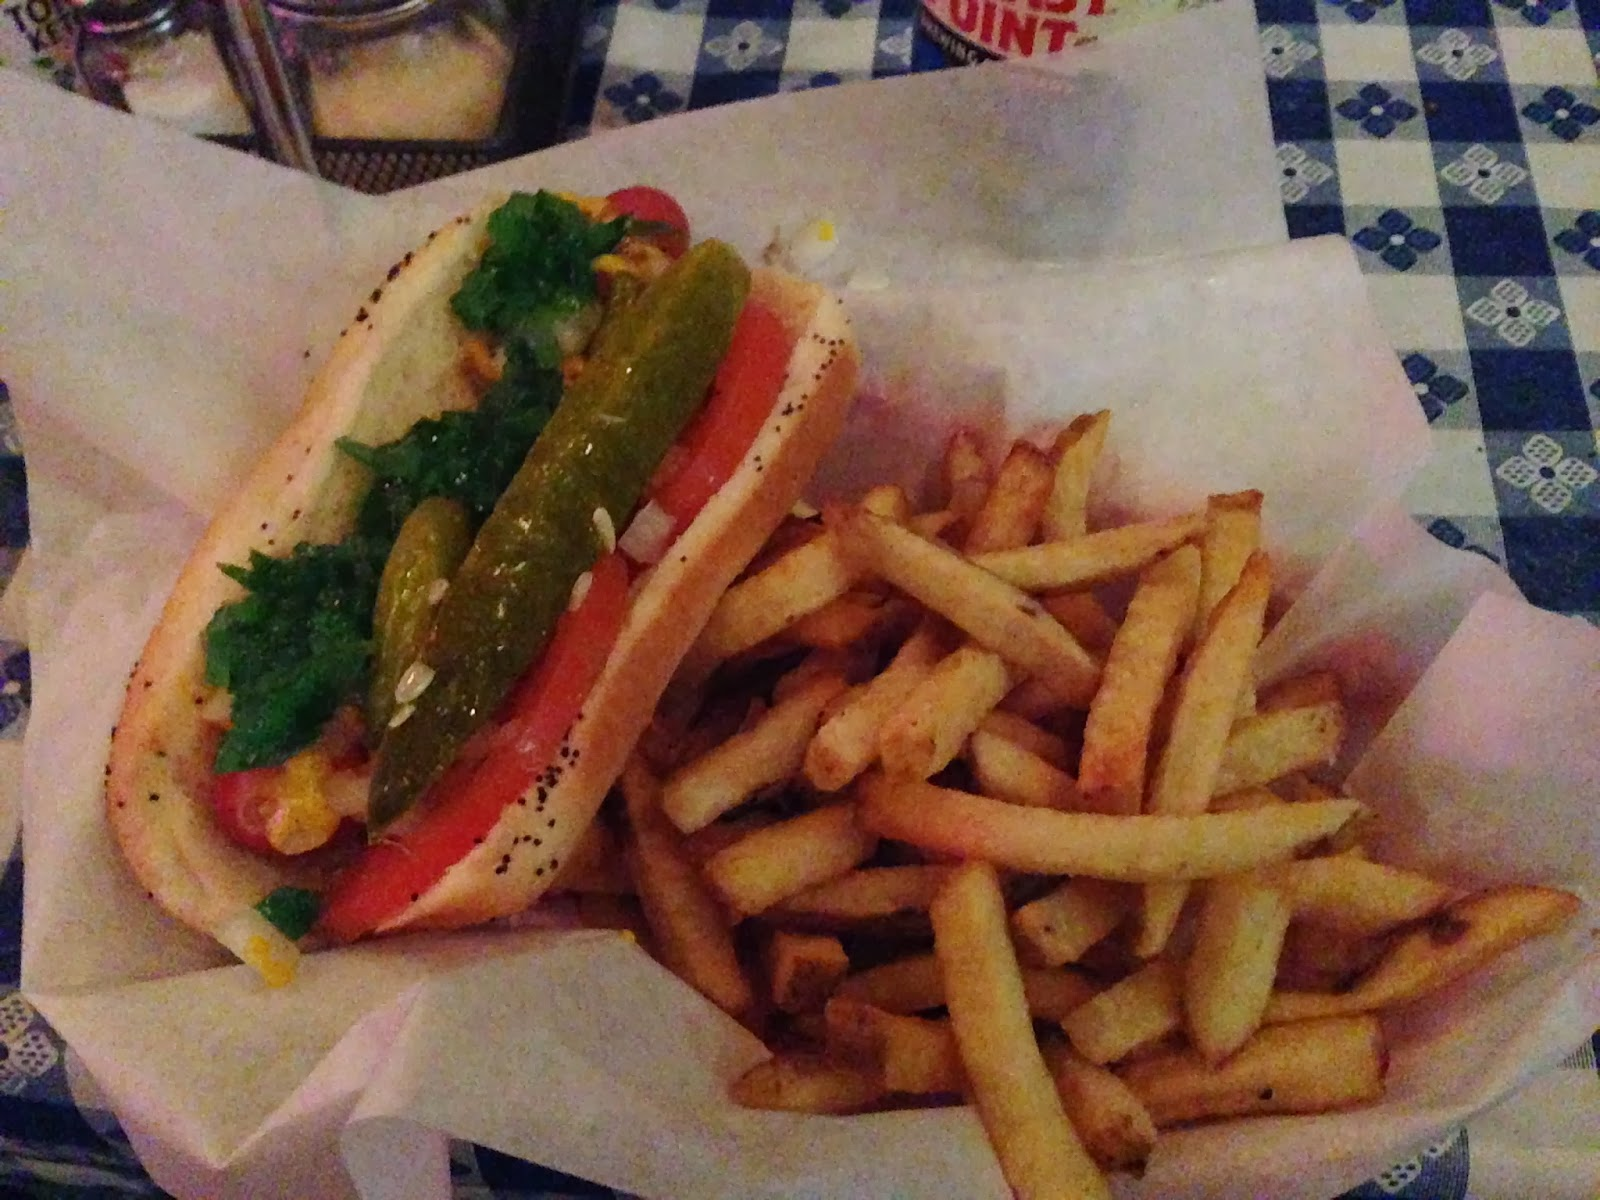 Chicago Hot Dog Place Rude